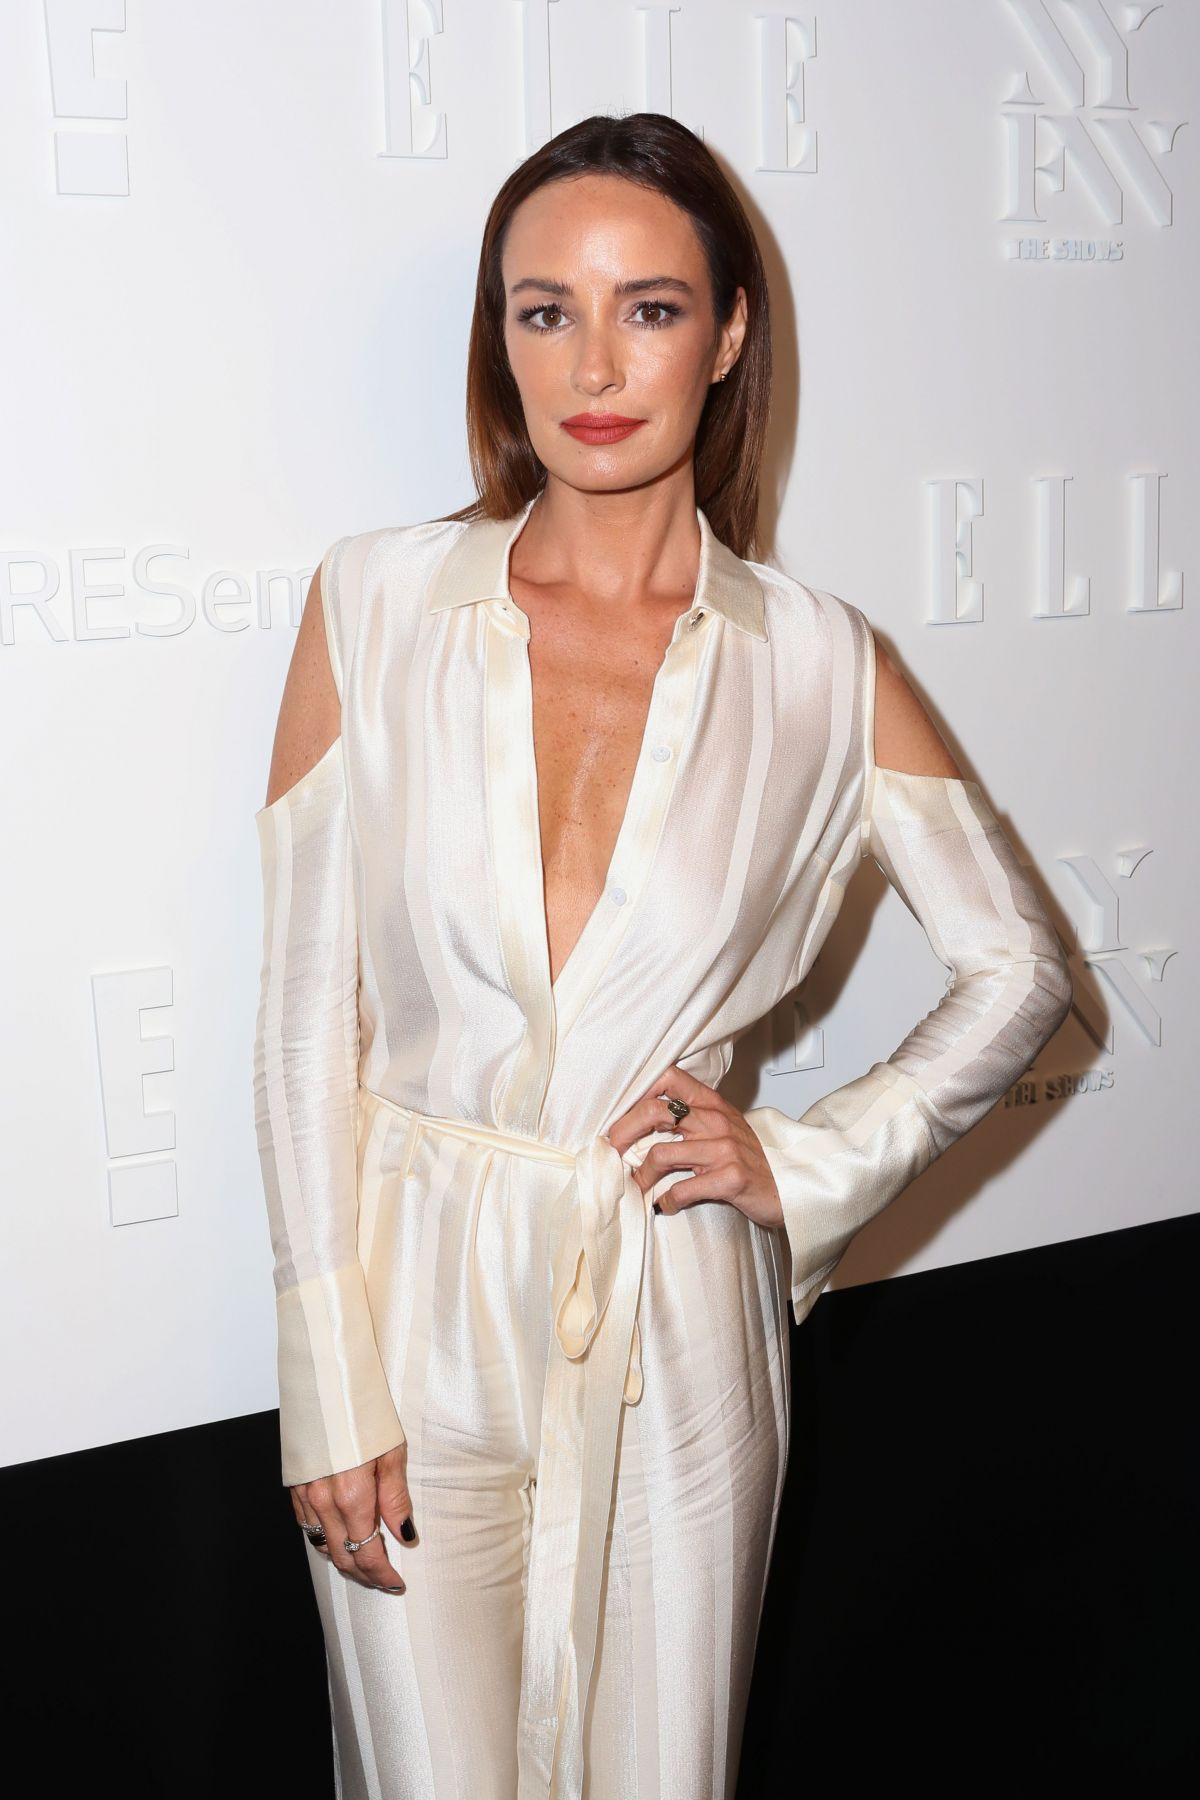 CATT SADLER at E!, Elle & Img Host New York Fashion Week Kickoff Party 09/06/2017